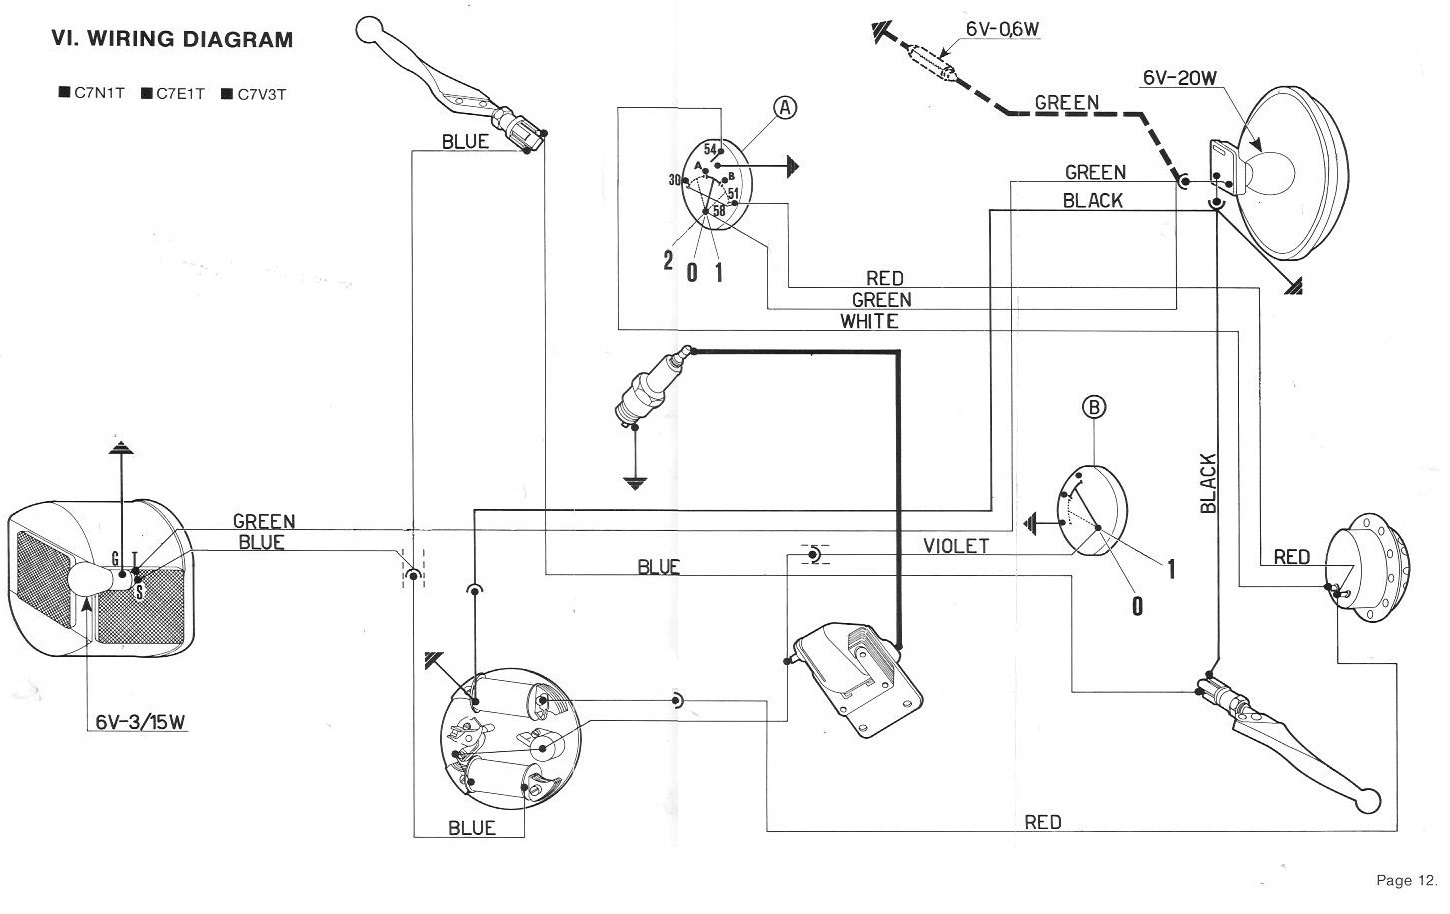 Vespa Wiring Diagram Page 4 And Schematics Free Electrical U00ab Myrons Mopeds Basic Diagrams Symbols